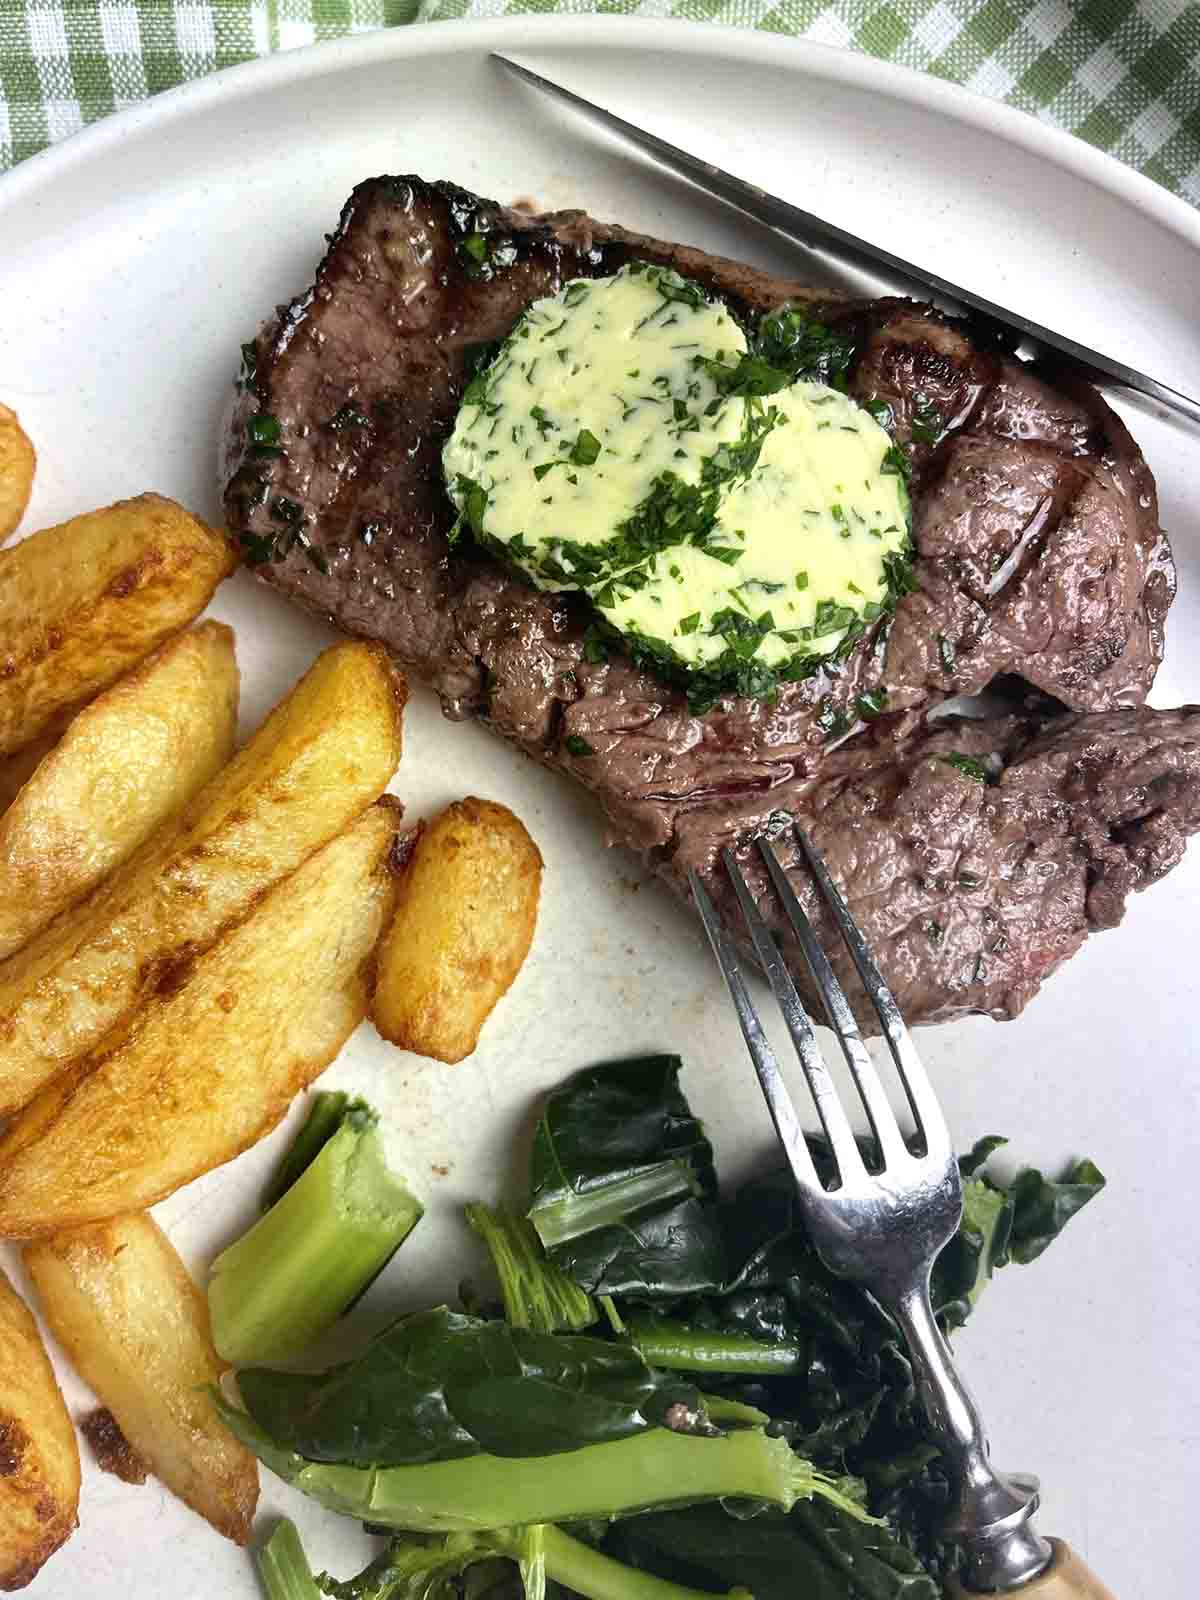 steak with garlic and herb compound butter on top.